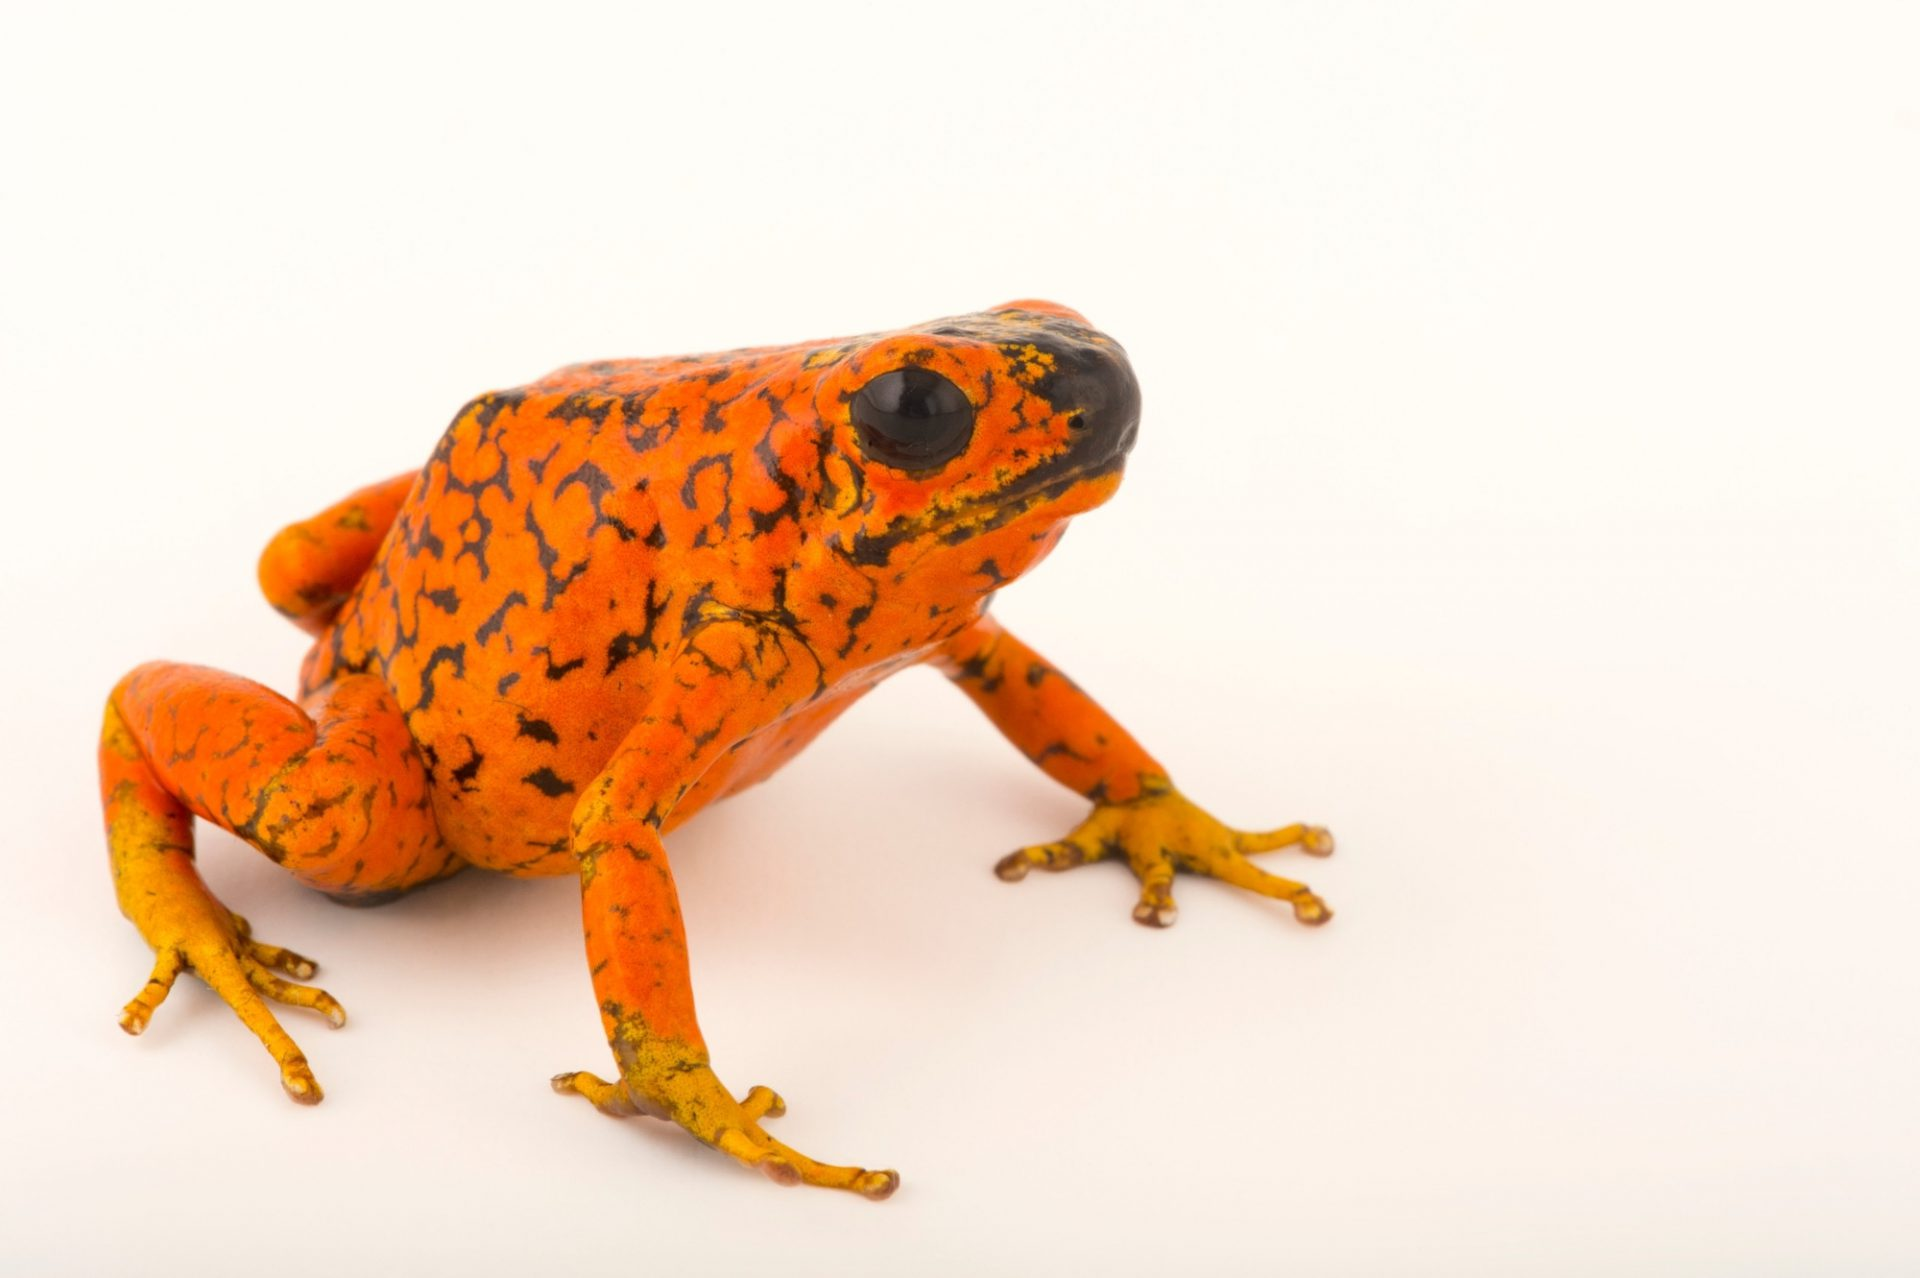 Picture of a Colombian color morph of a diablito frog (Oophaga sylvatica) at the Cali Zoo in Colombia.